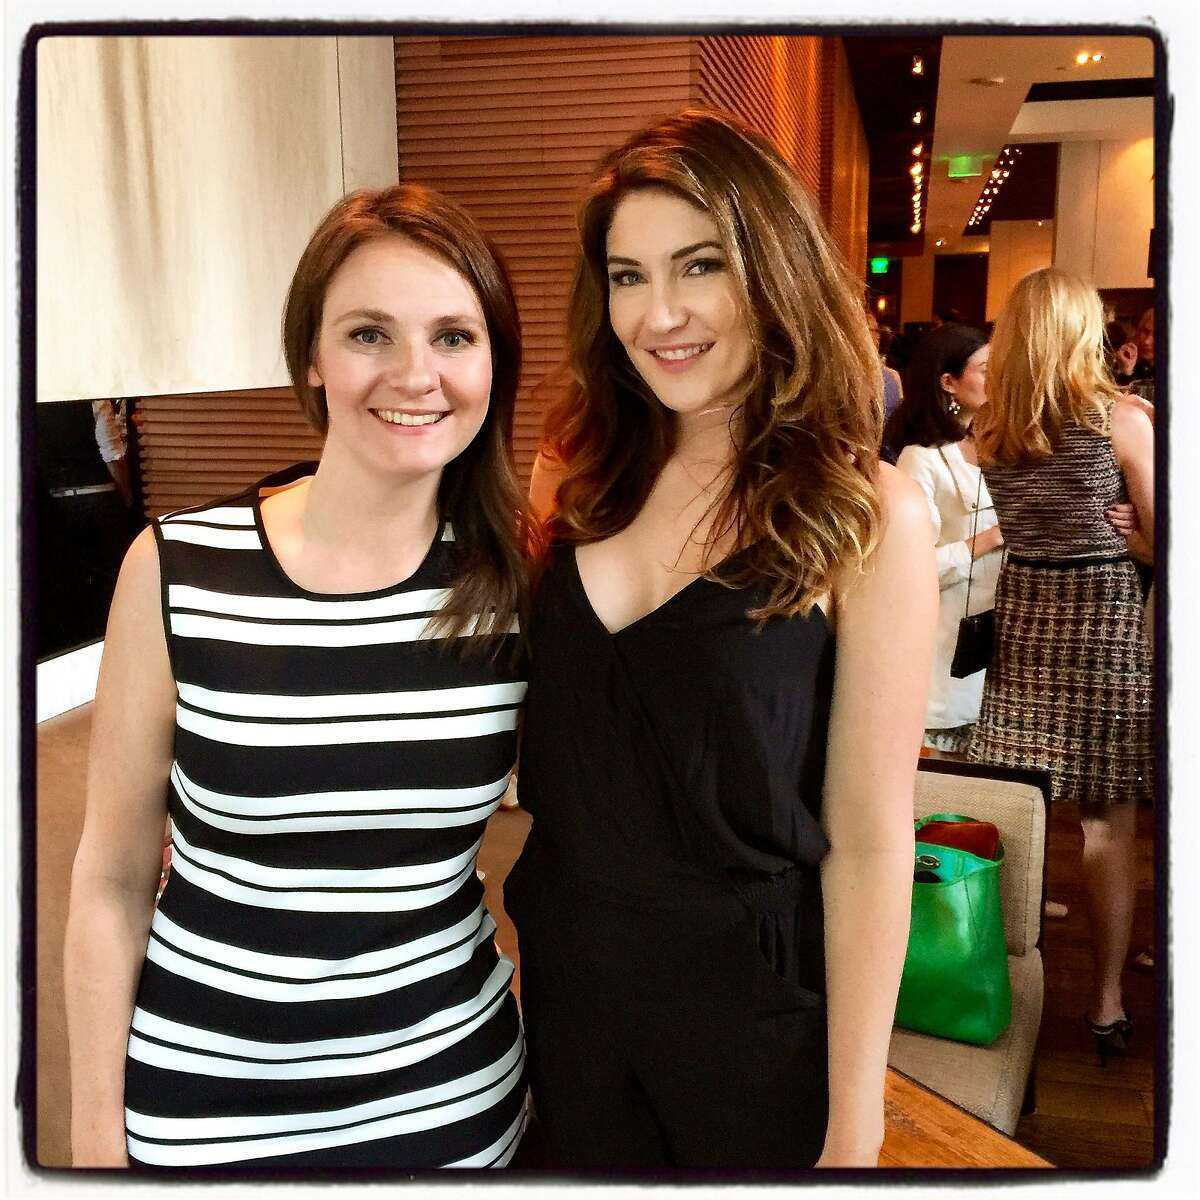 CloudFare co-founder Michelle Zatlyn (left) and StyleSeat founder & CEO Melody McCloskey at the Elle Women in Tech dinner at Prospect Restaurant. June 2015. By Catherine Bigelow.